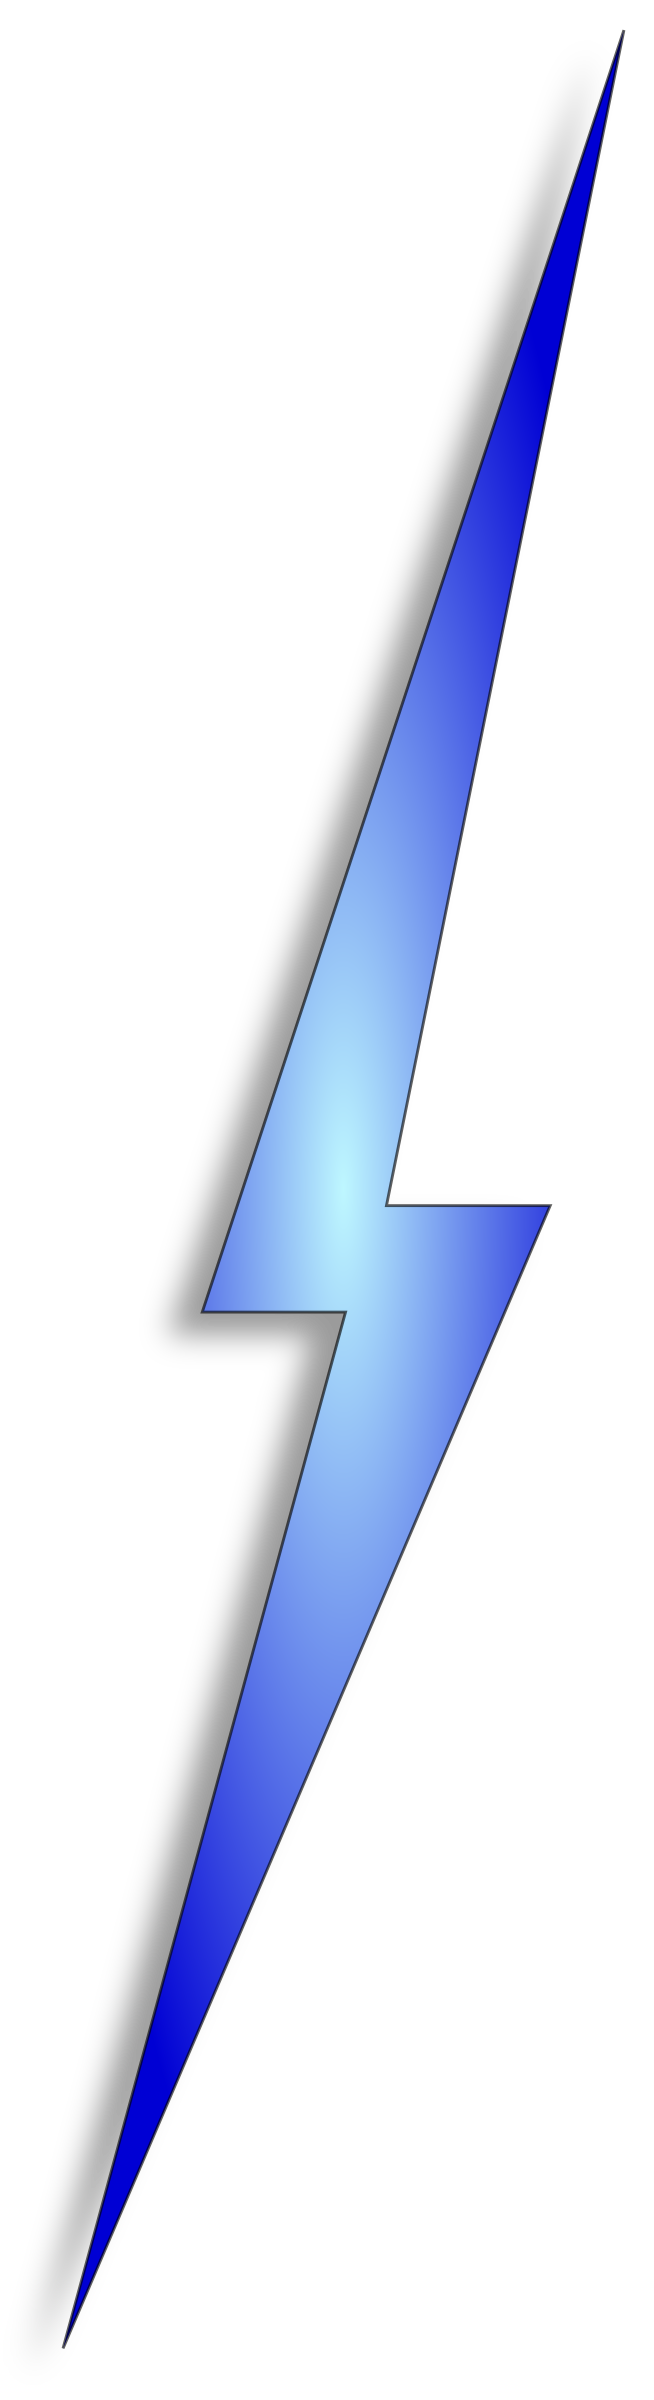 Big image png. Electric clipart lighting bolt